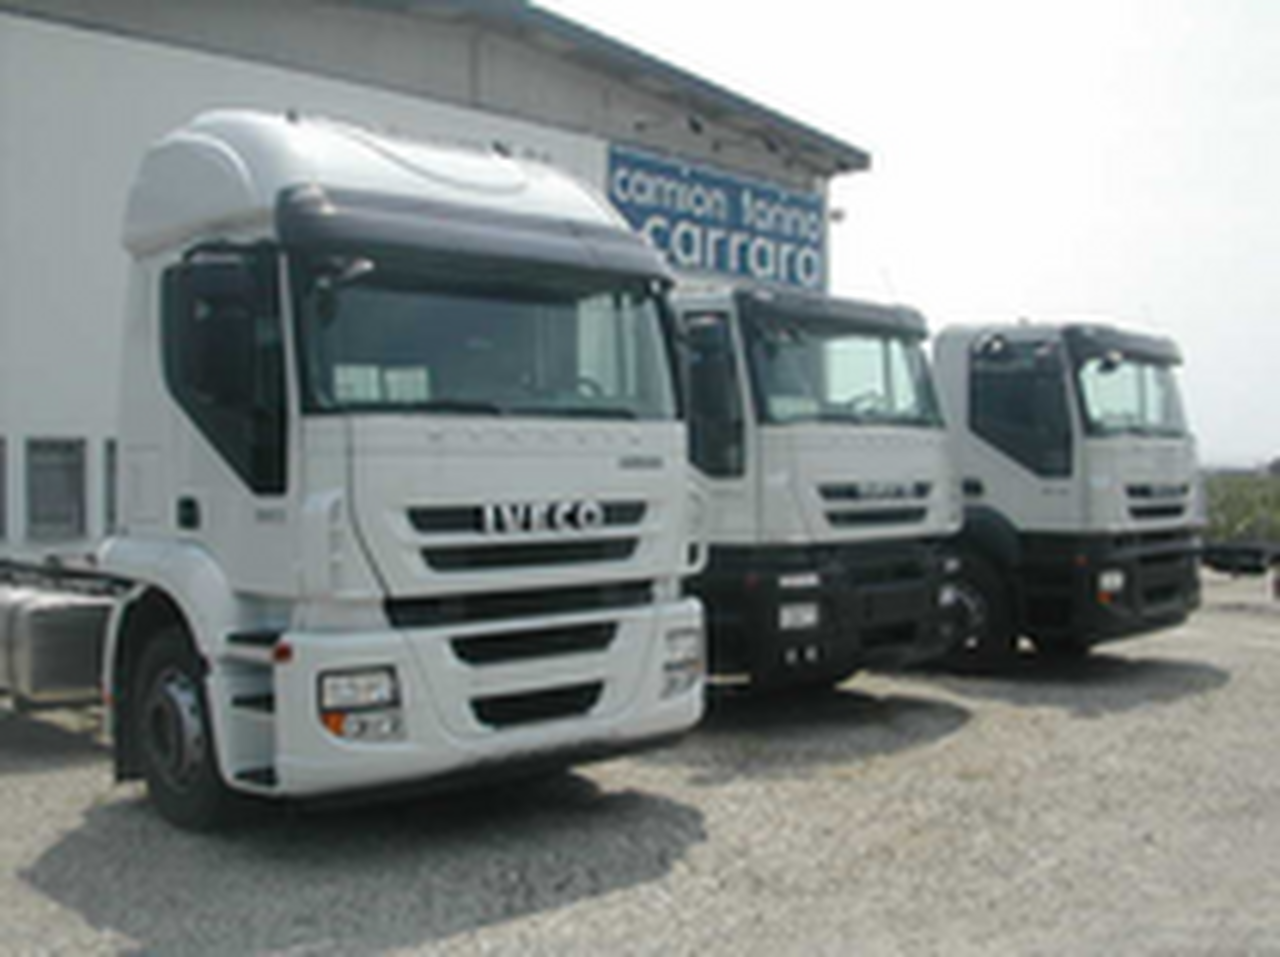 Stock site CAMION TORINO SRL